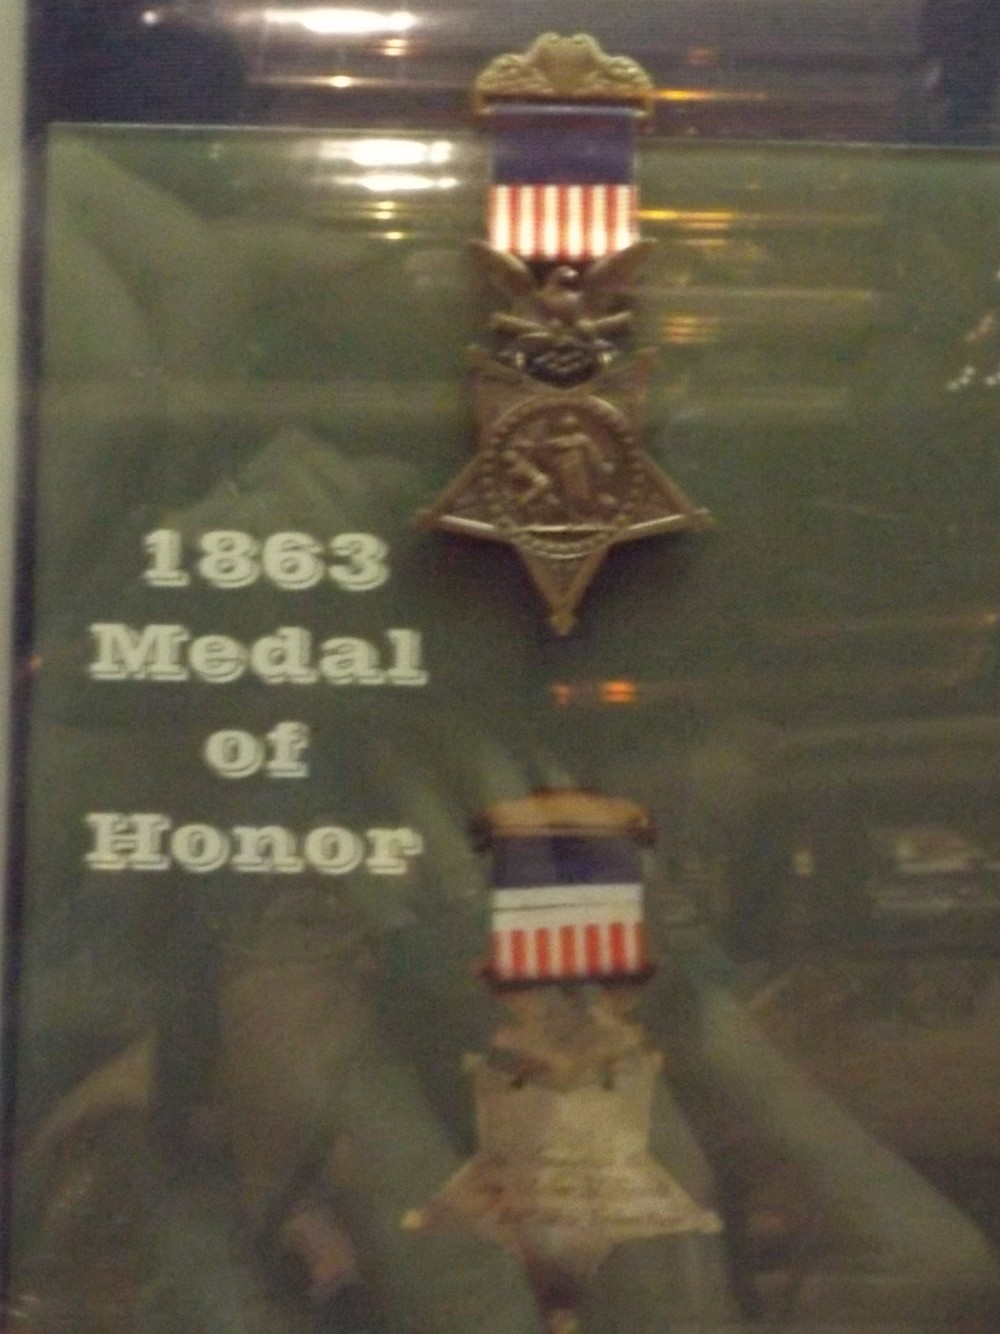 The Medals of Honor awarded to Brown and Scott are on display at the Southern Museum of Civil War and Locomotive History